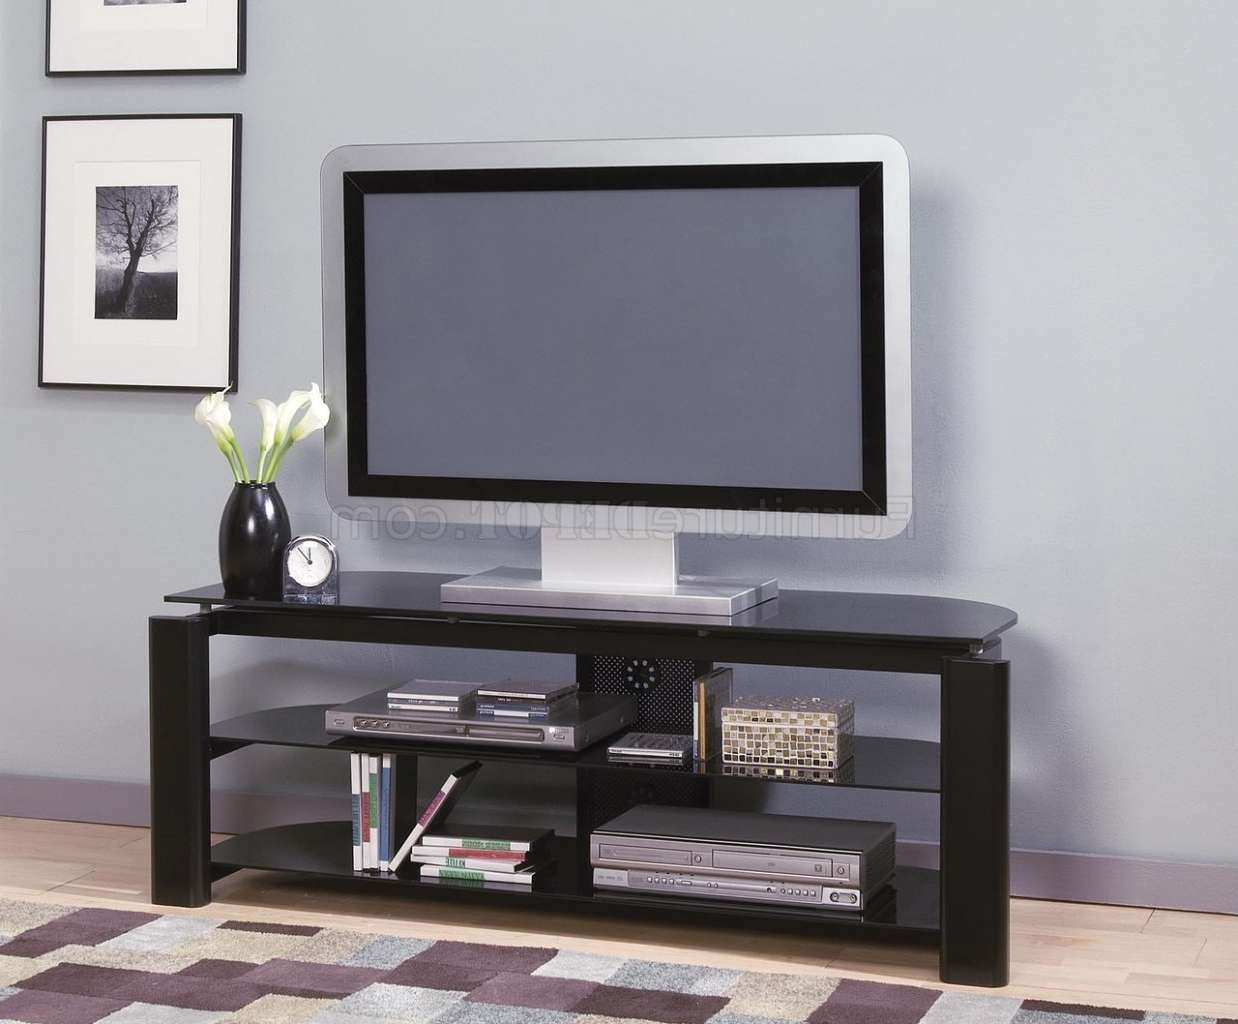 Black Glass & Metal Modern Tv Stand W/storage Shelves Within Modern Glass Tv Stands (View 2 of 15)